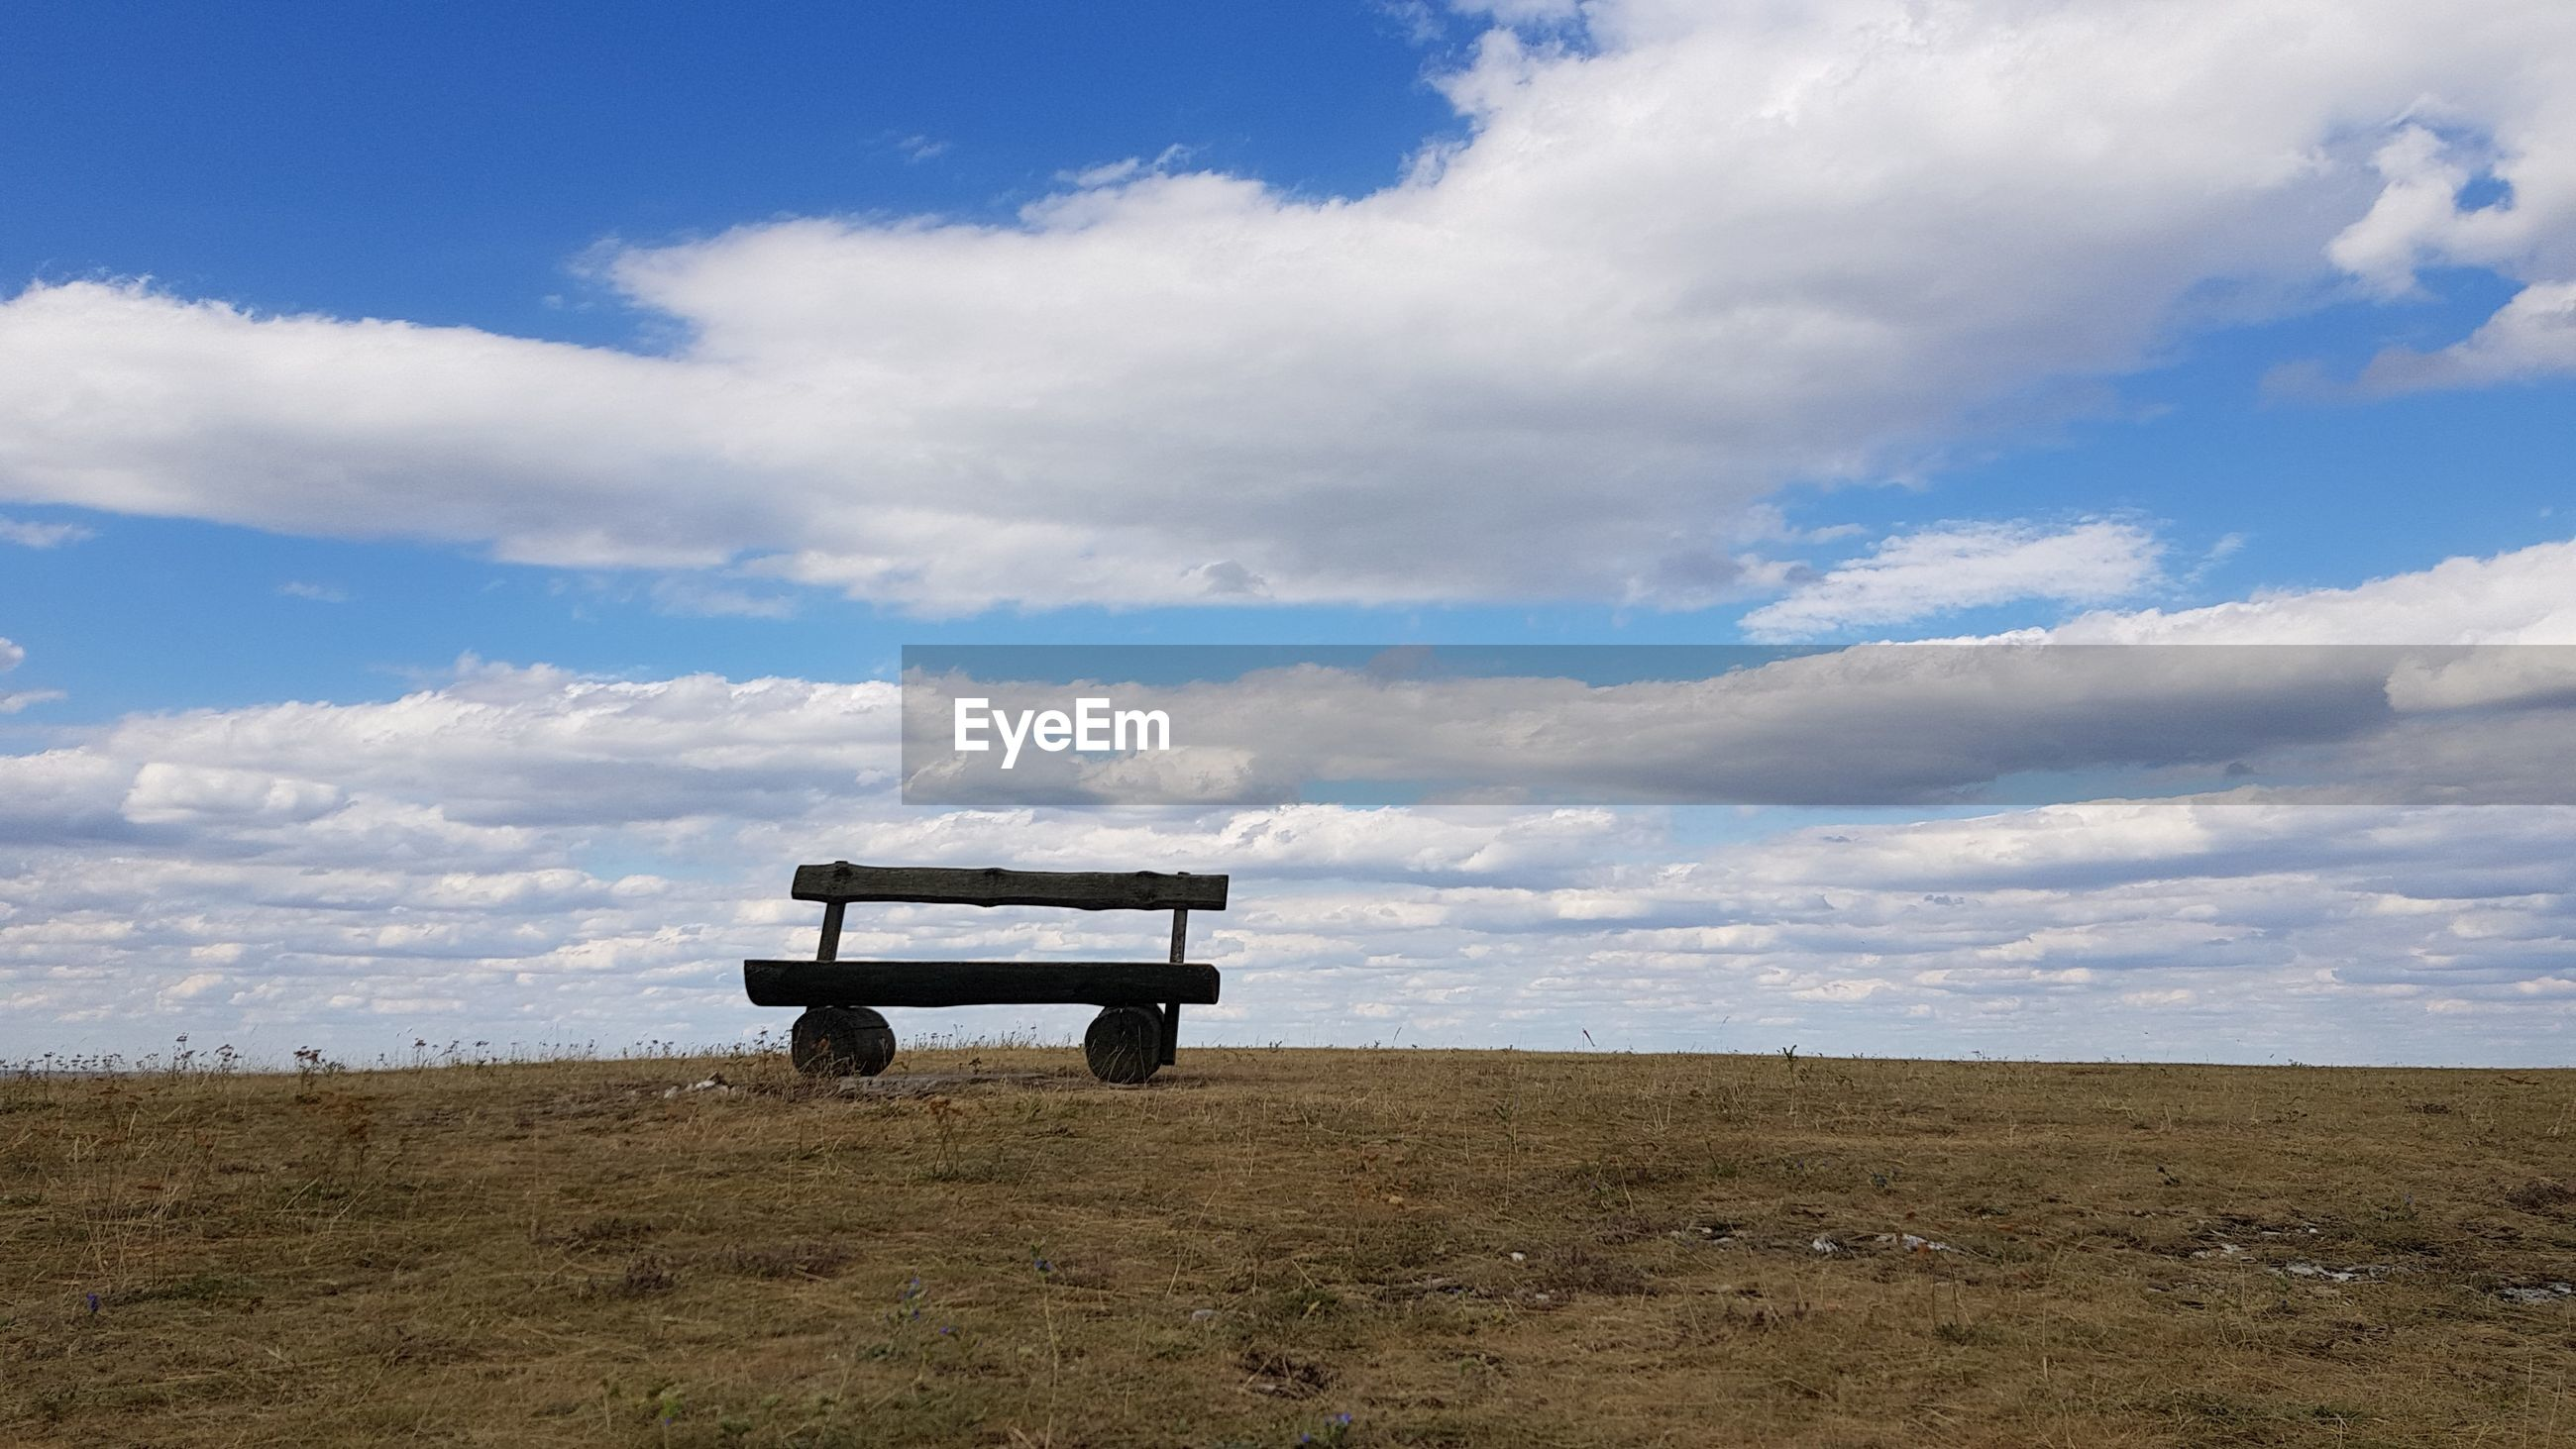 EMPTY BENCH ON FIELD BY ROAD AGAINST SKY